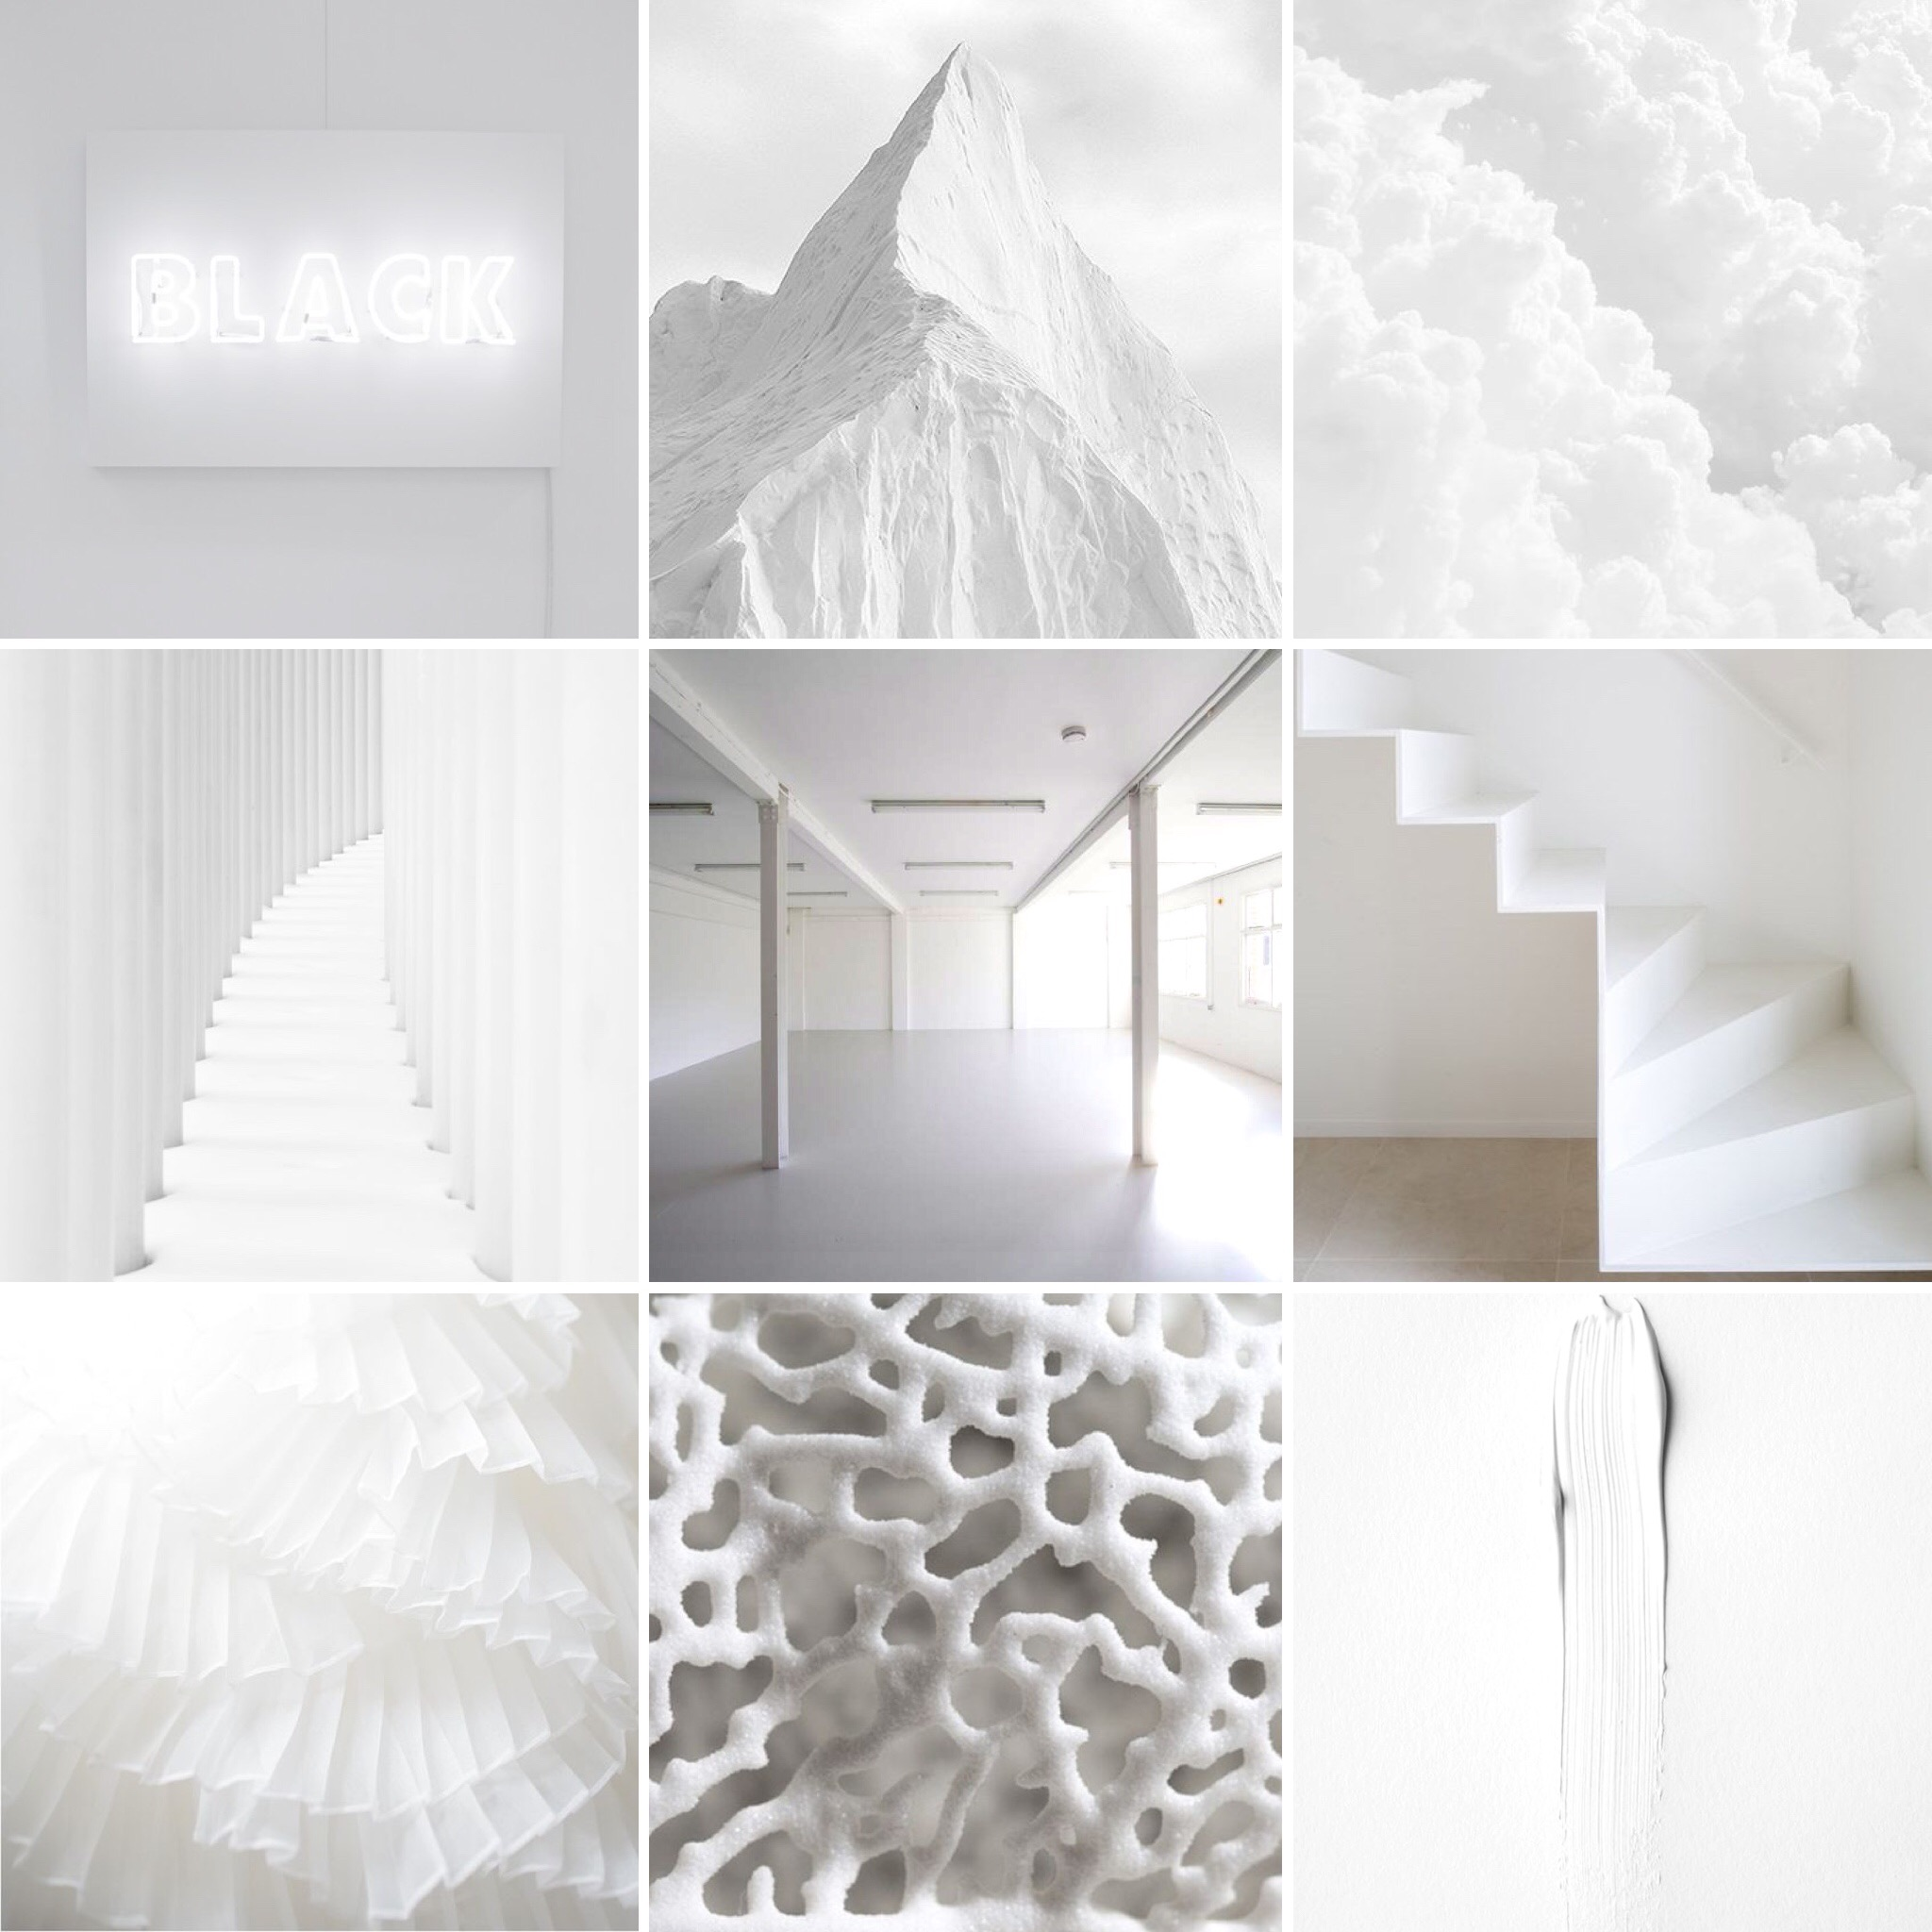 WHITE IS THE NEW BLACK.